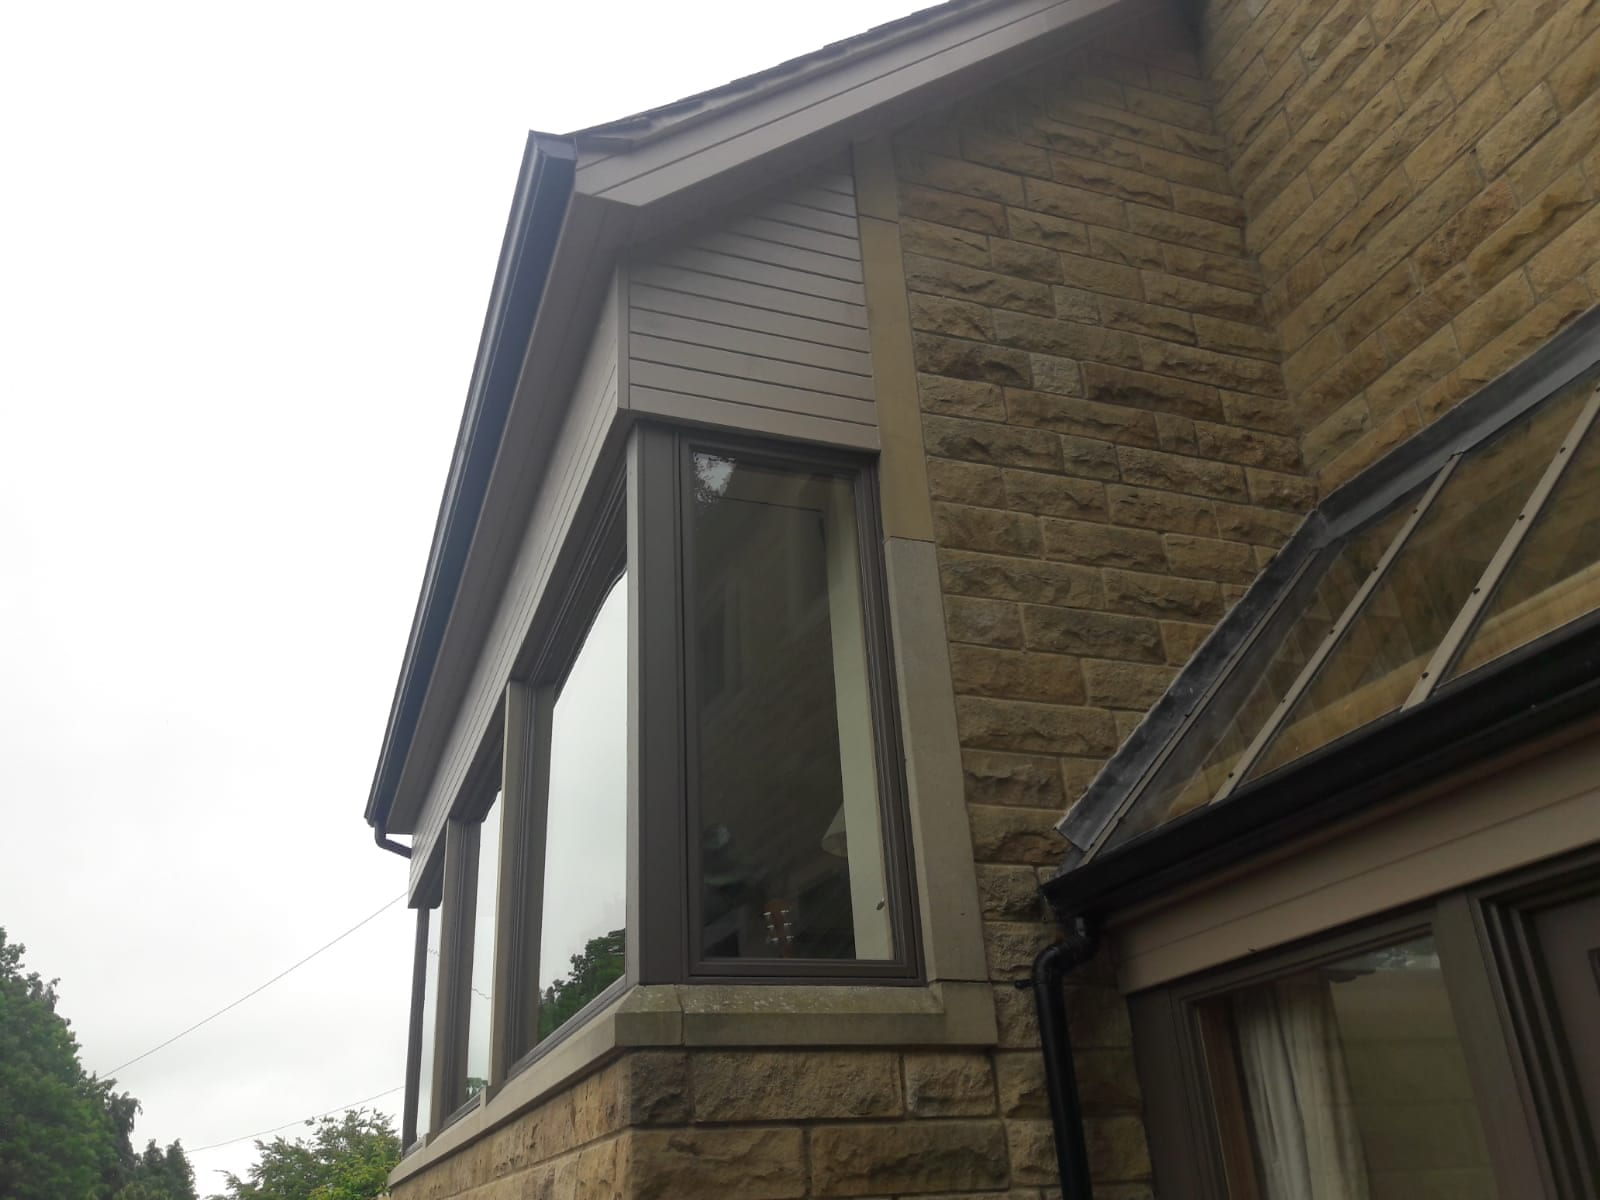 Exterior wood Cladding and window hand painted by professional Painter & Decorator Gareth Thompson in Cookridge, Leeds